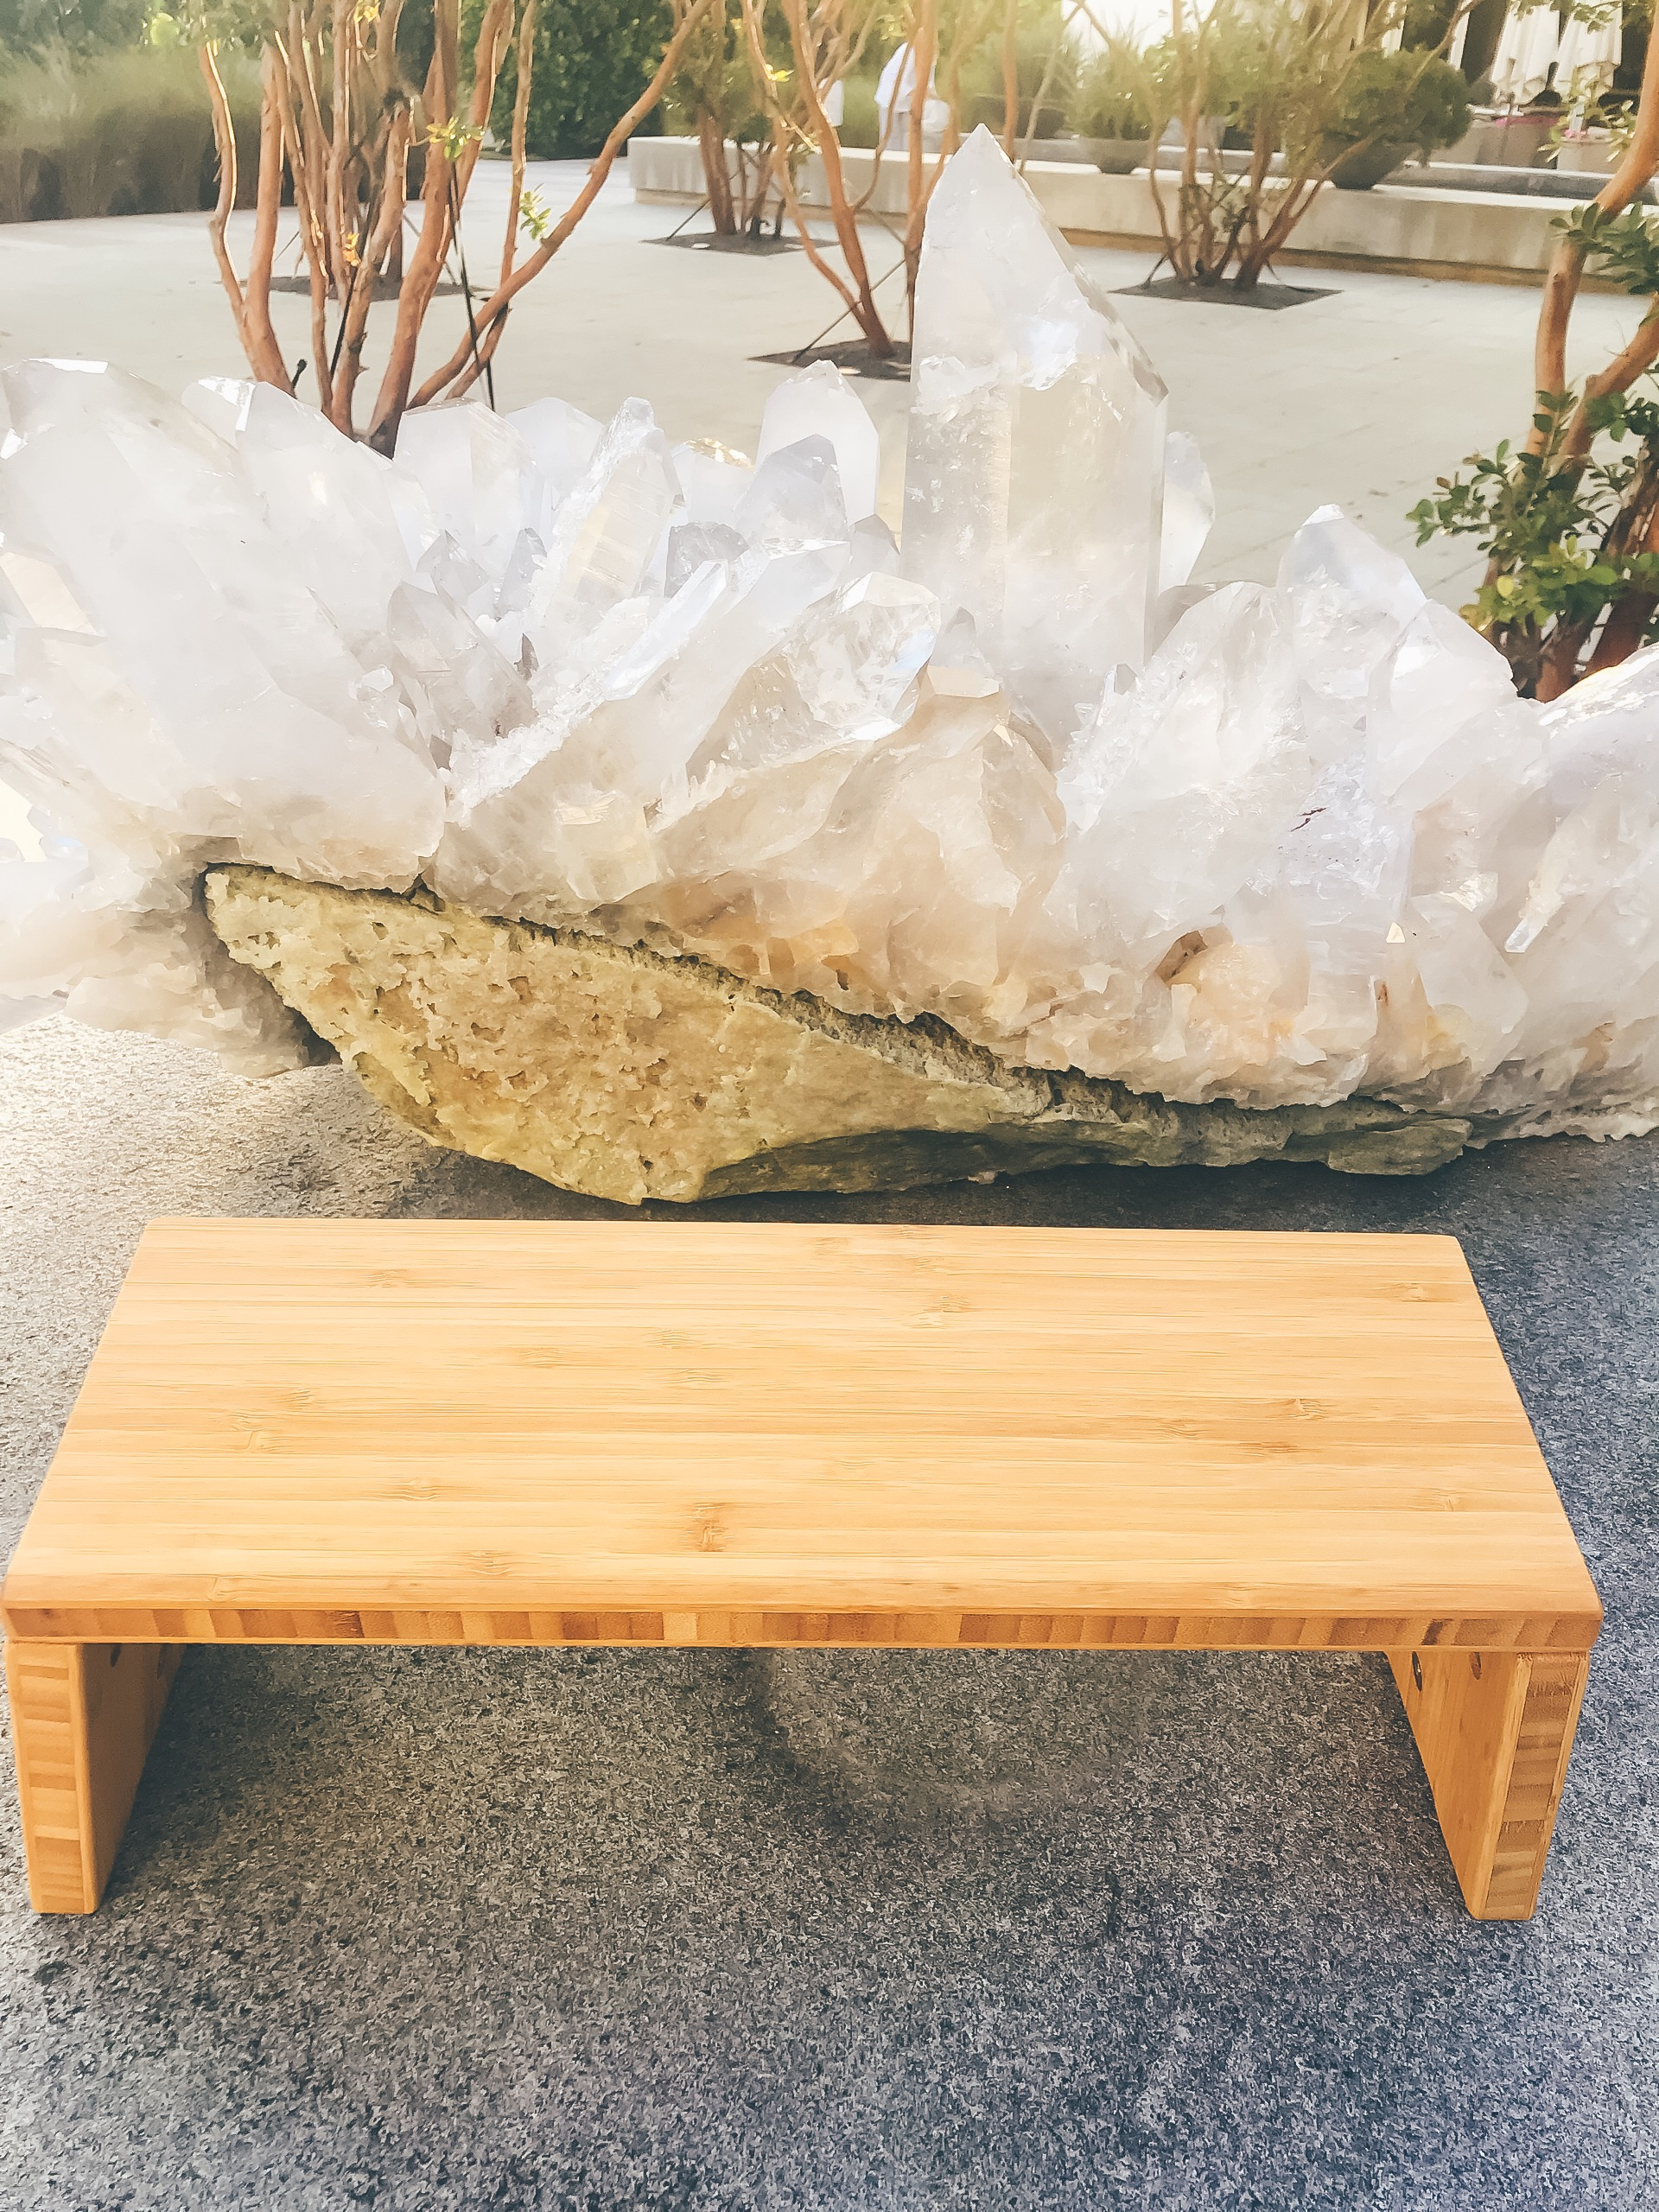 Travel-Sized Meditation Bench - If you were following along on my instagram stories during my recent Miami trip to The Sacred Space Miami, you may remember my delight with Stoolyoga's meditation bench. It fits perfectly in a carry-on, folds up easily and is a perfect prop to get you excited to meditate  when you are out and about.Stoolyoga has offered our community 15% off with the code AG15OFF if you want to add a new meditation bench to your meditation travel routine.